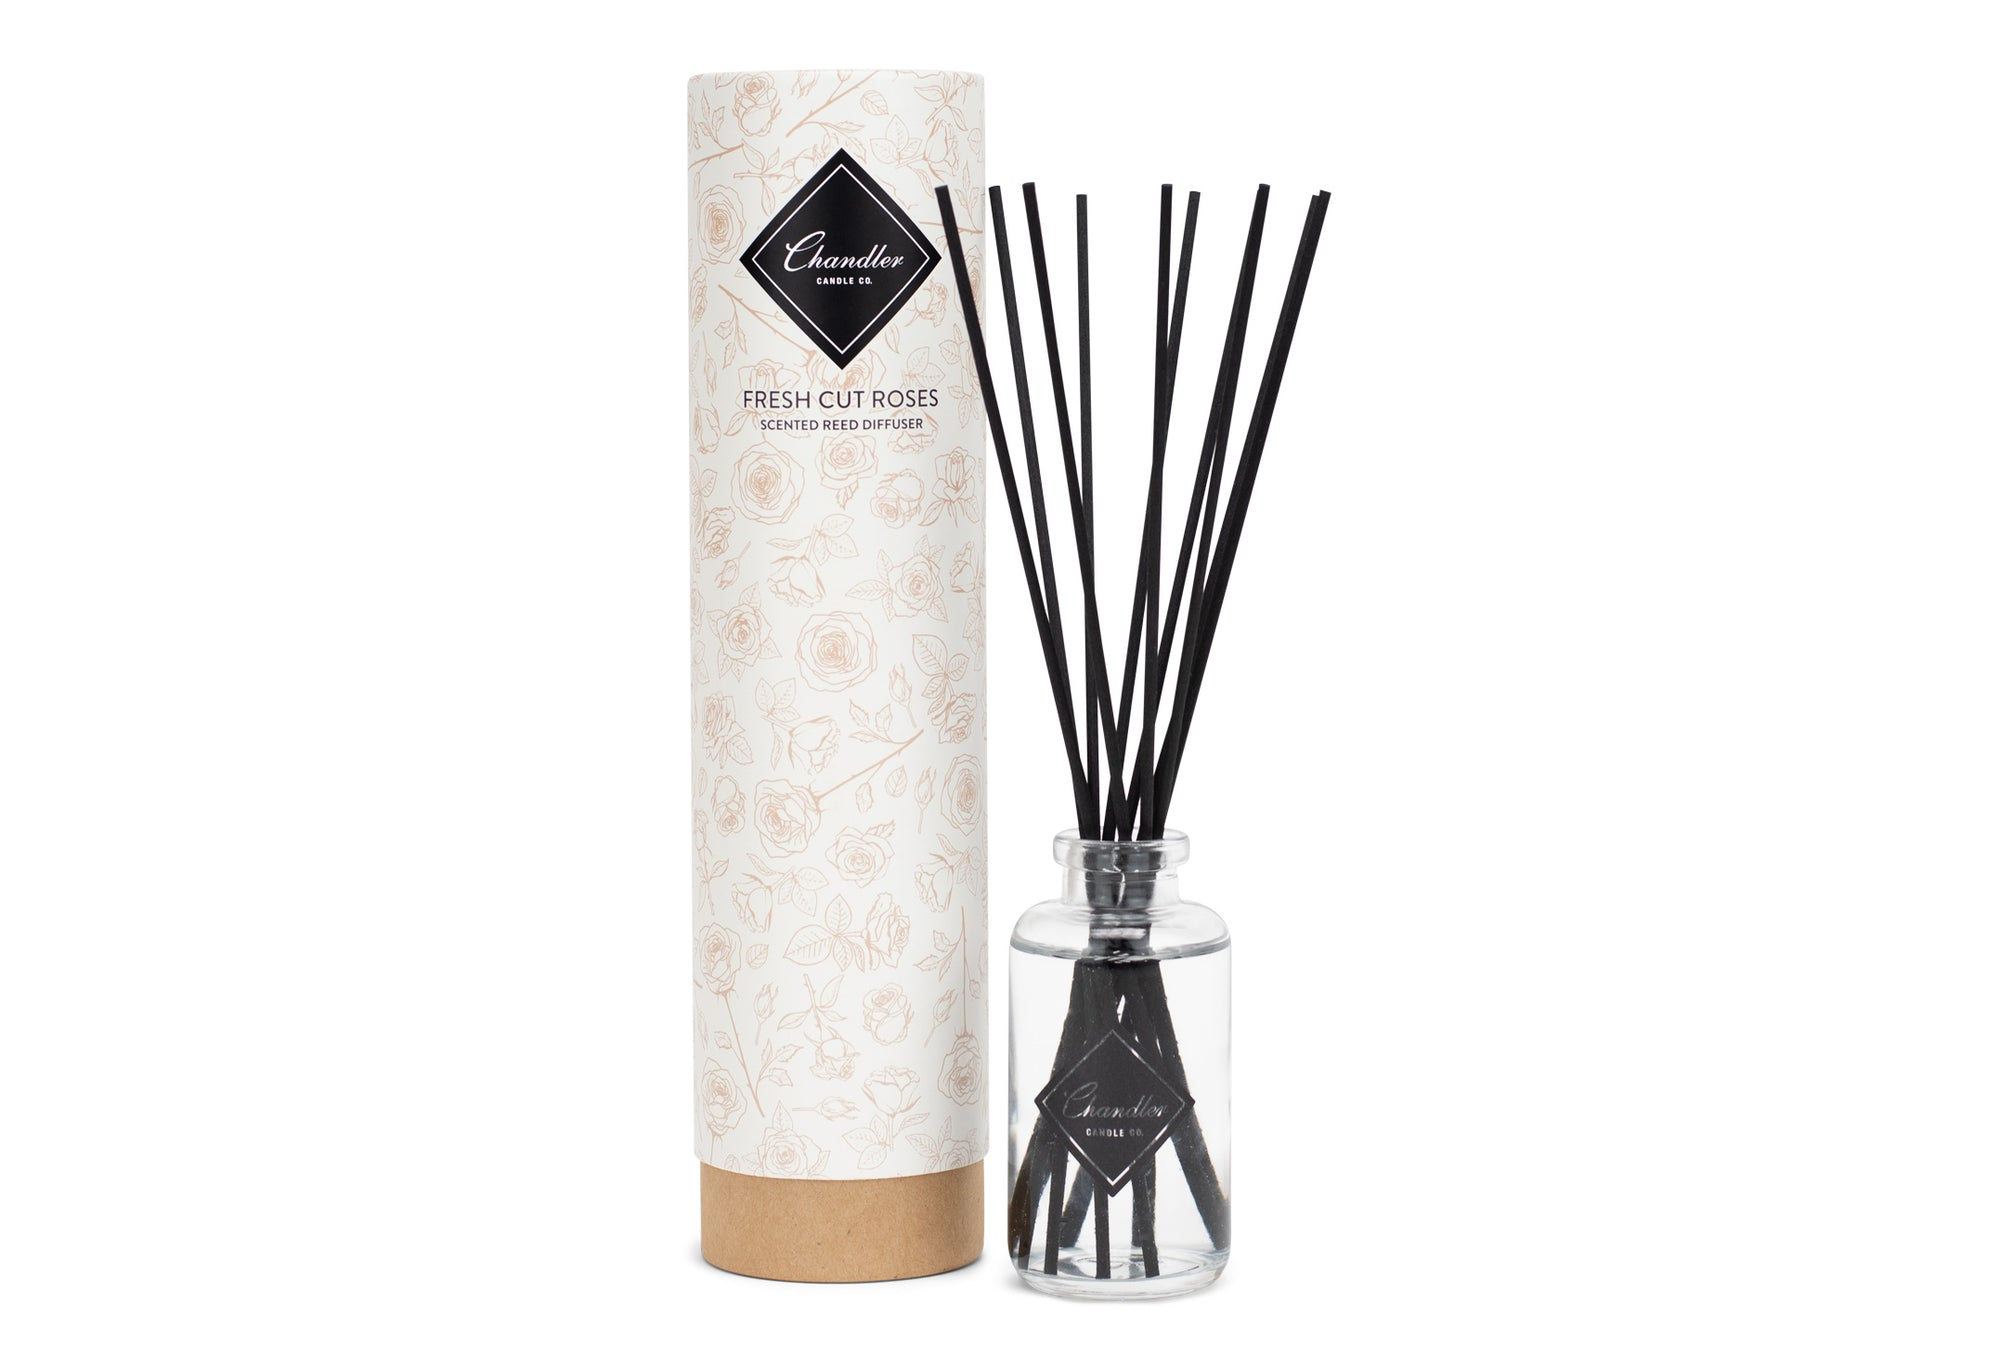 Fresh Cut Roses Scented Reed Diffuser